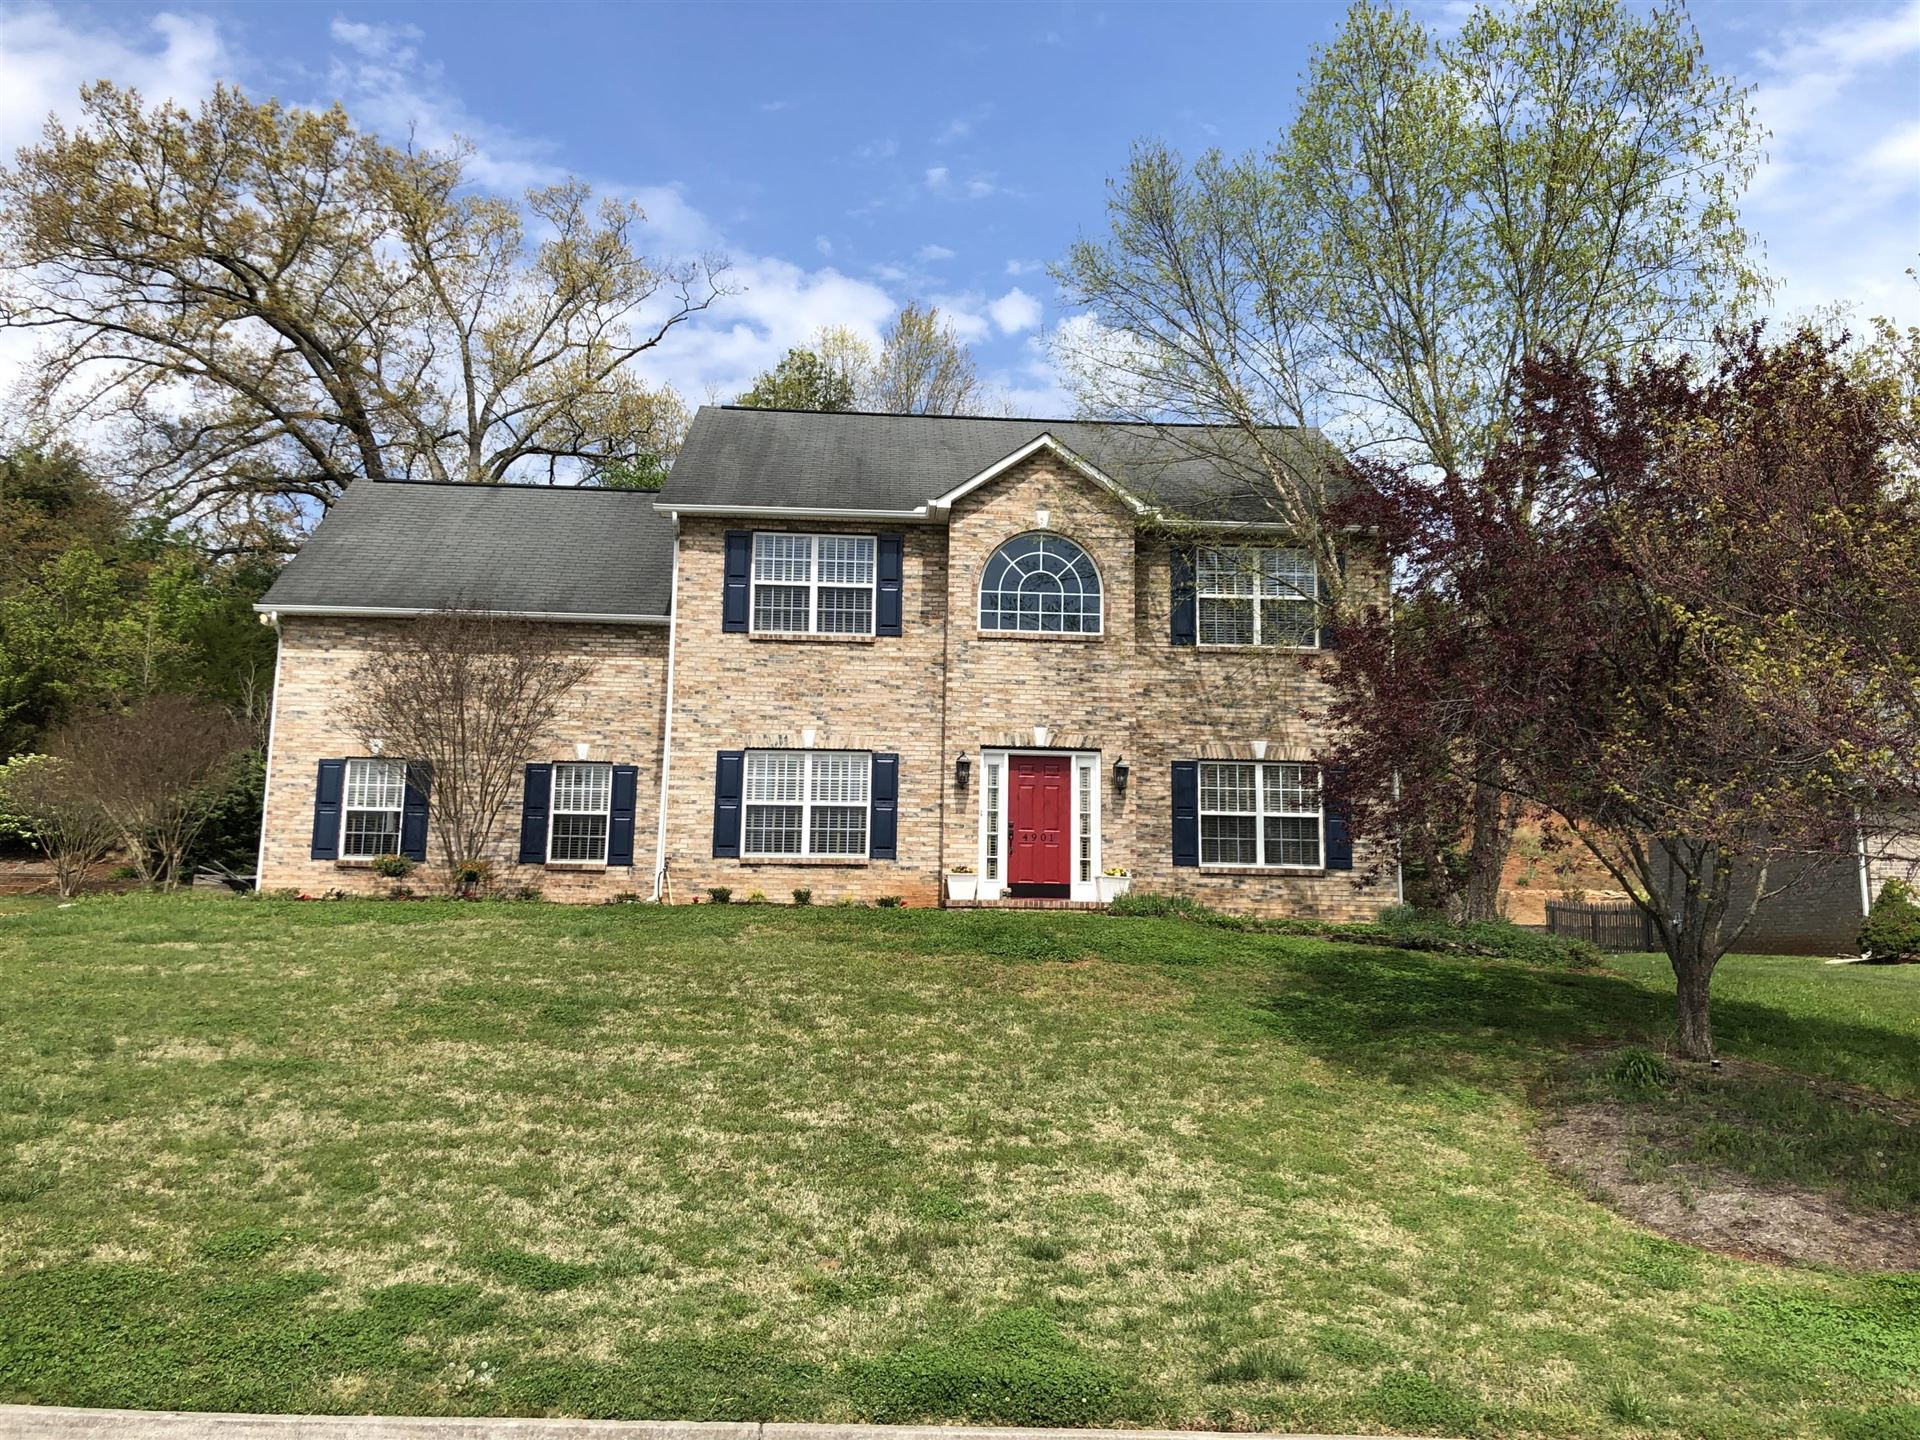 Photo of 4901 Shannon Run Drive, Knoxville, TN 37918 (MLS # 1149157)